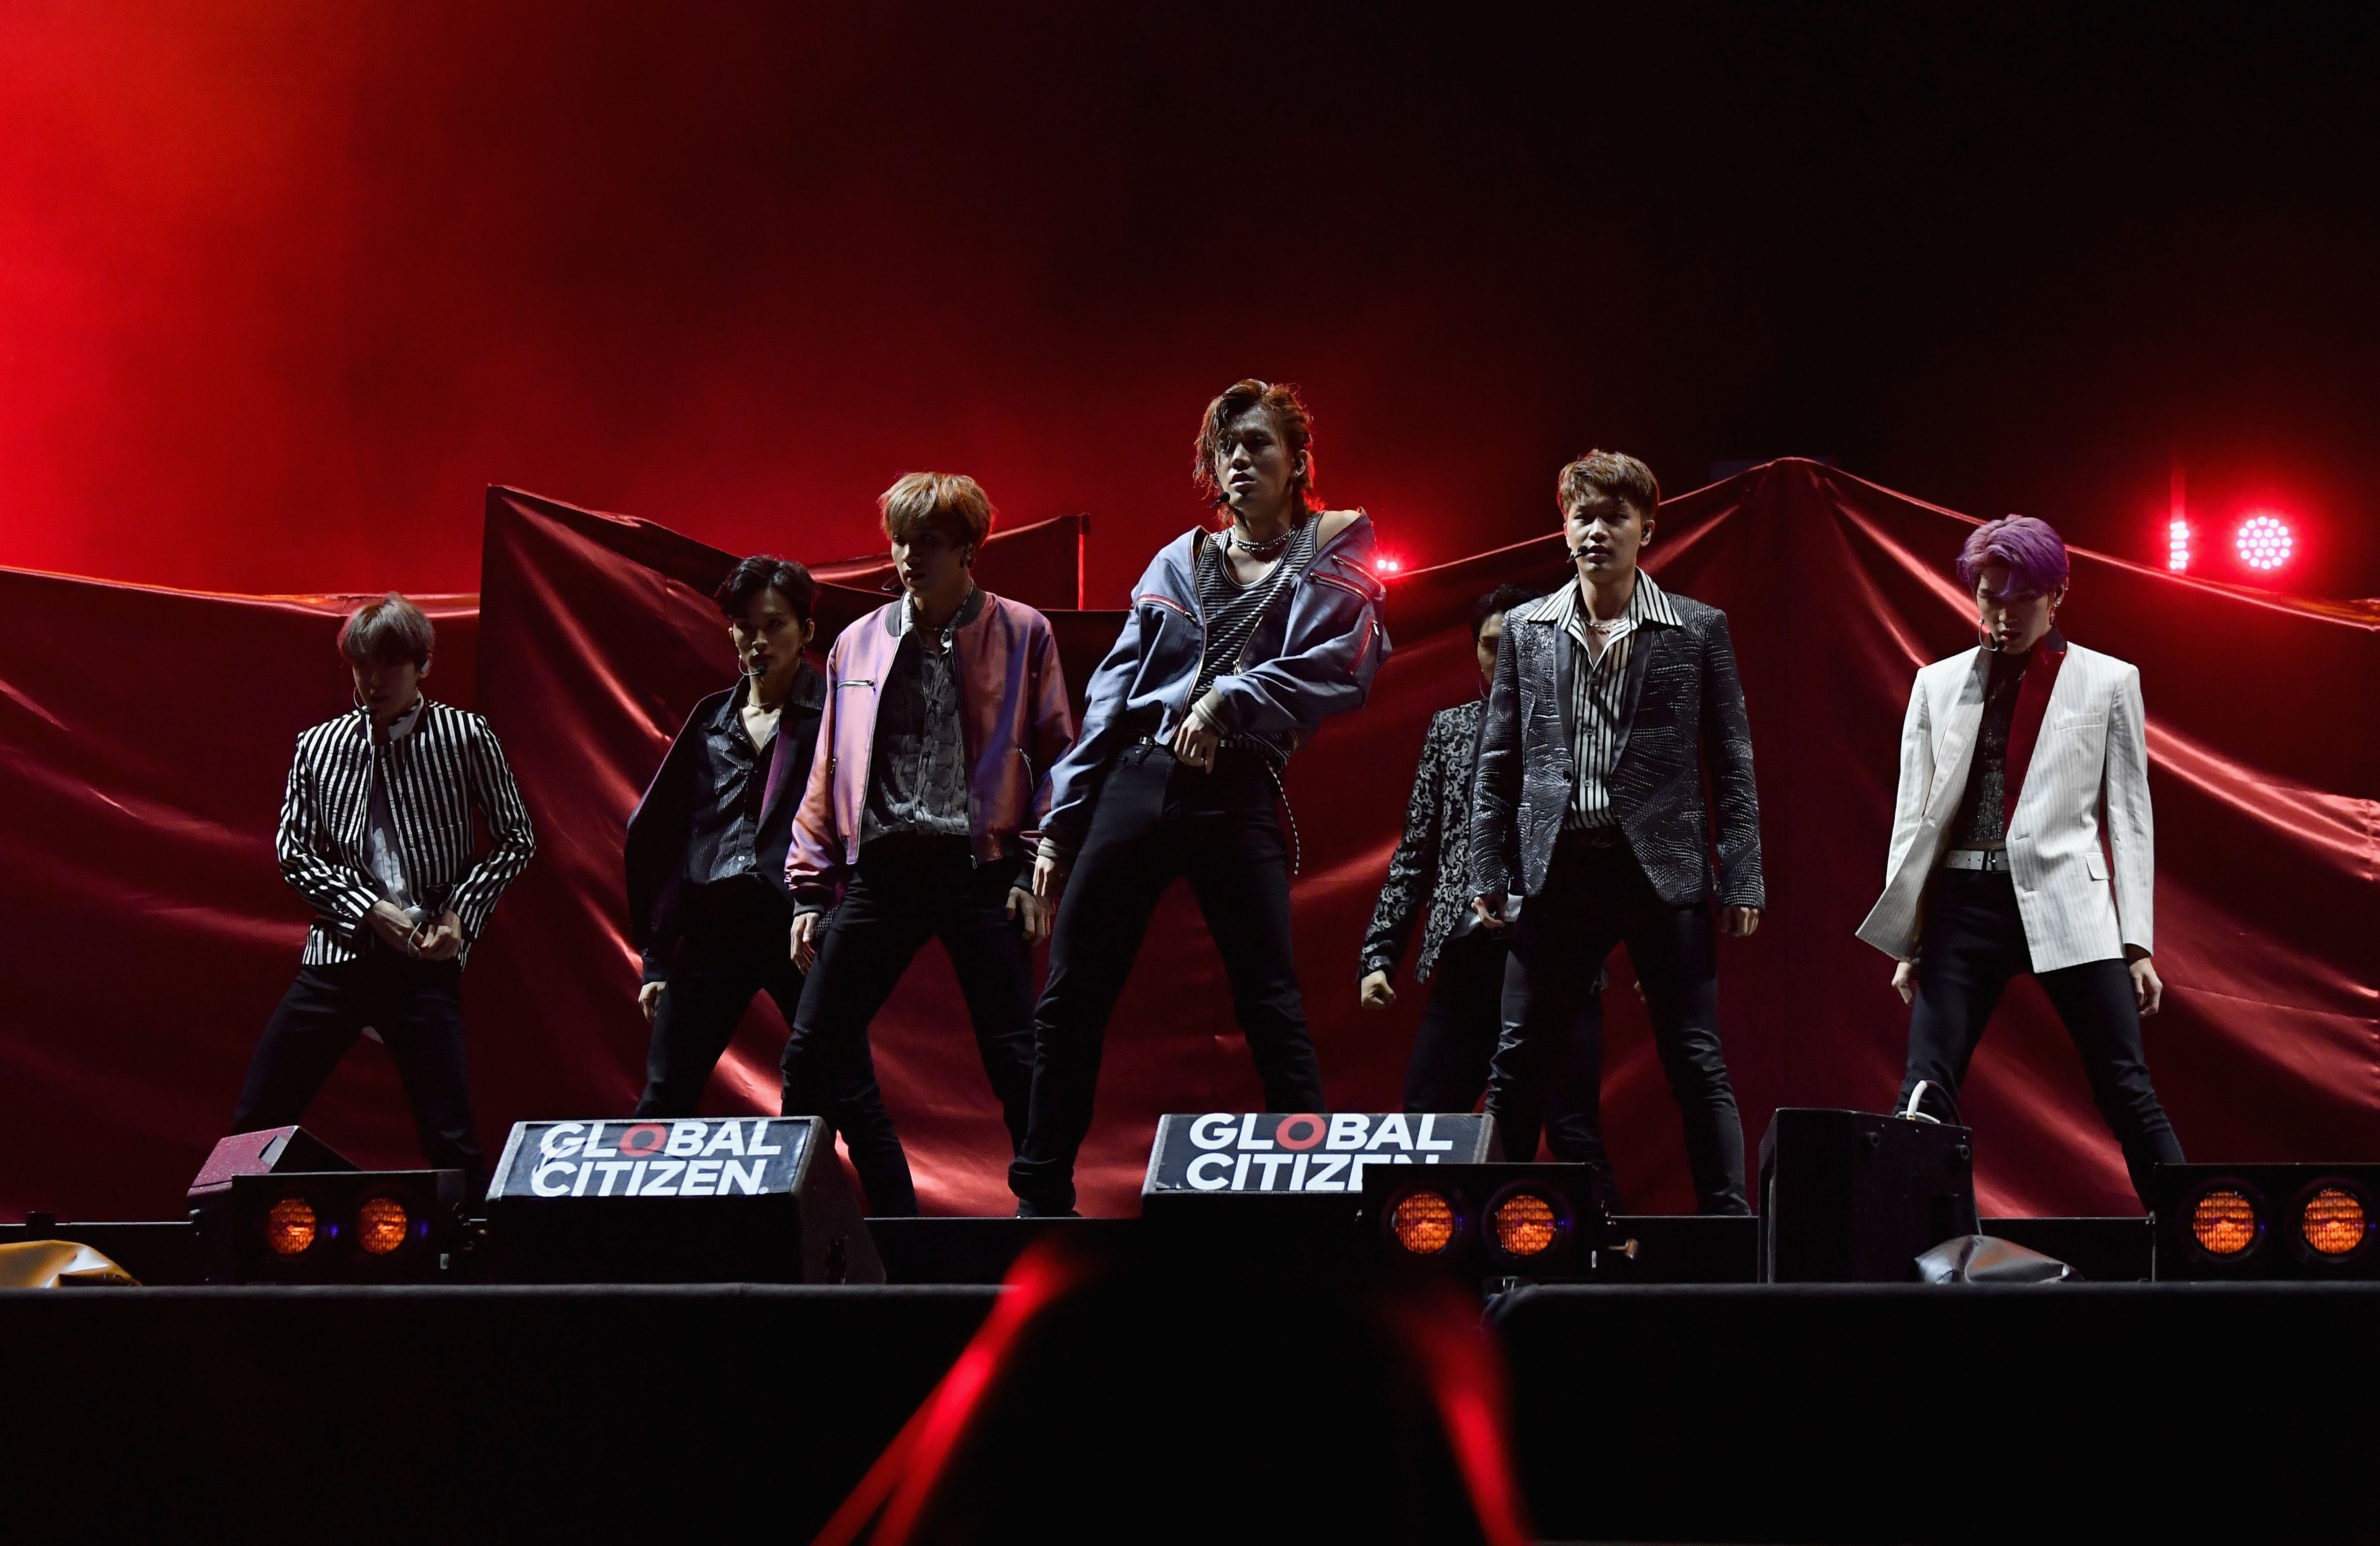 South Korean boy band NCT 127 perform onstage at the 2019 Global Citizen Festival: Power The Movement in Central Park in New York on September 28, 2019. (Photo by Angela Weiss / AFP)        (Photo credit should read ANGELA WEISS/AFP/Getty Images)